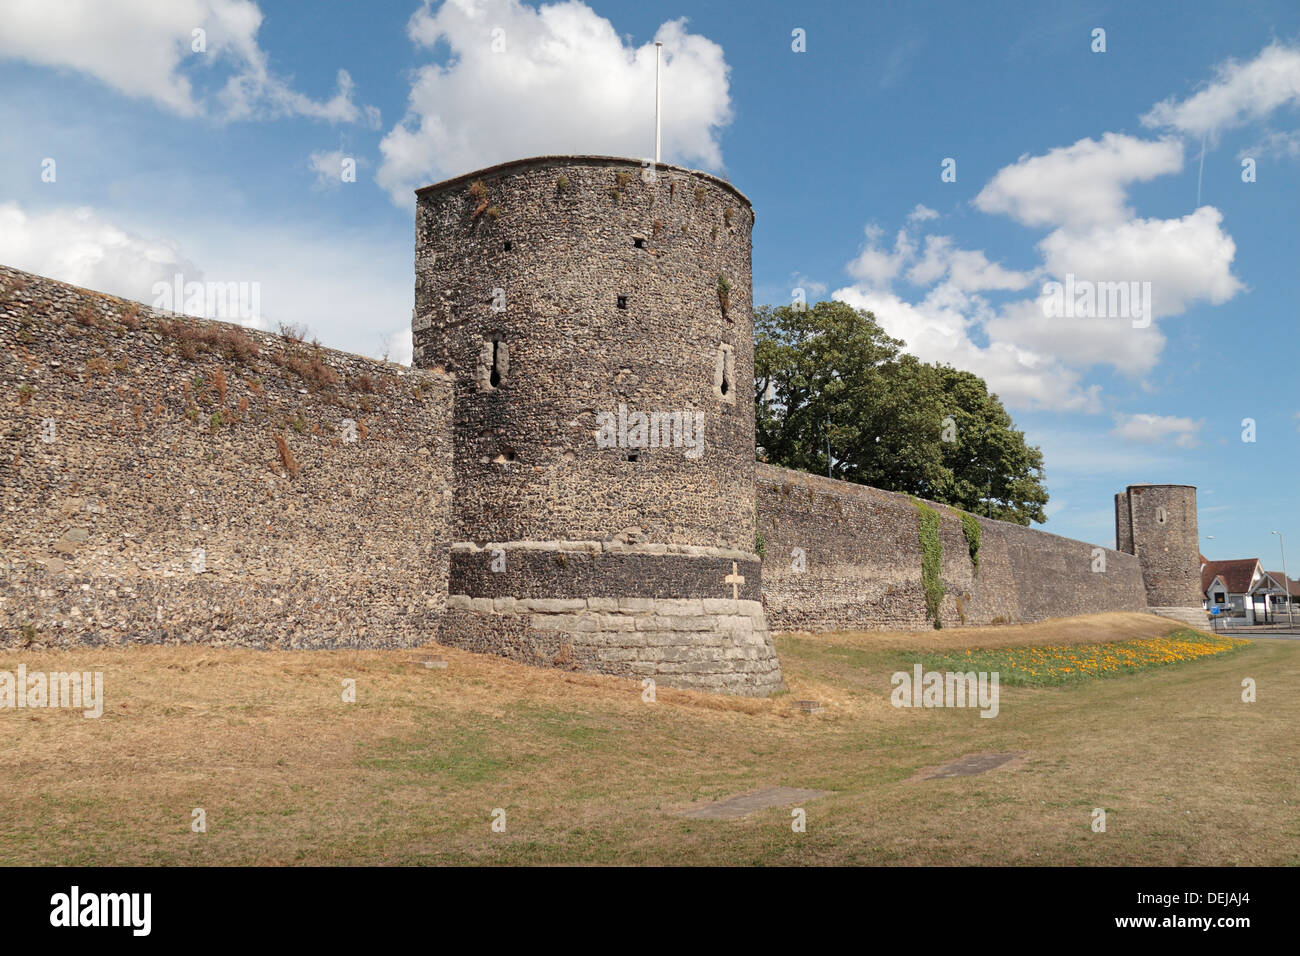 Part of the historic city walls which encircle the centre of Canterbury, Kent, UK. - Stock Image